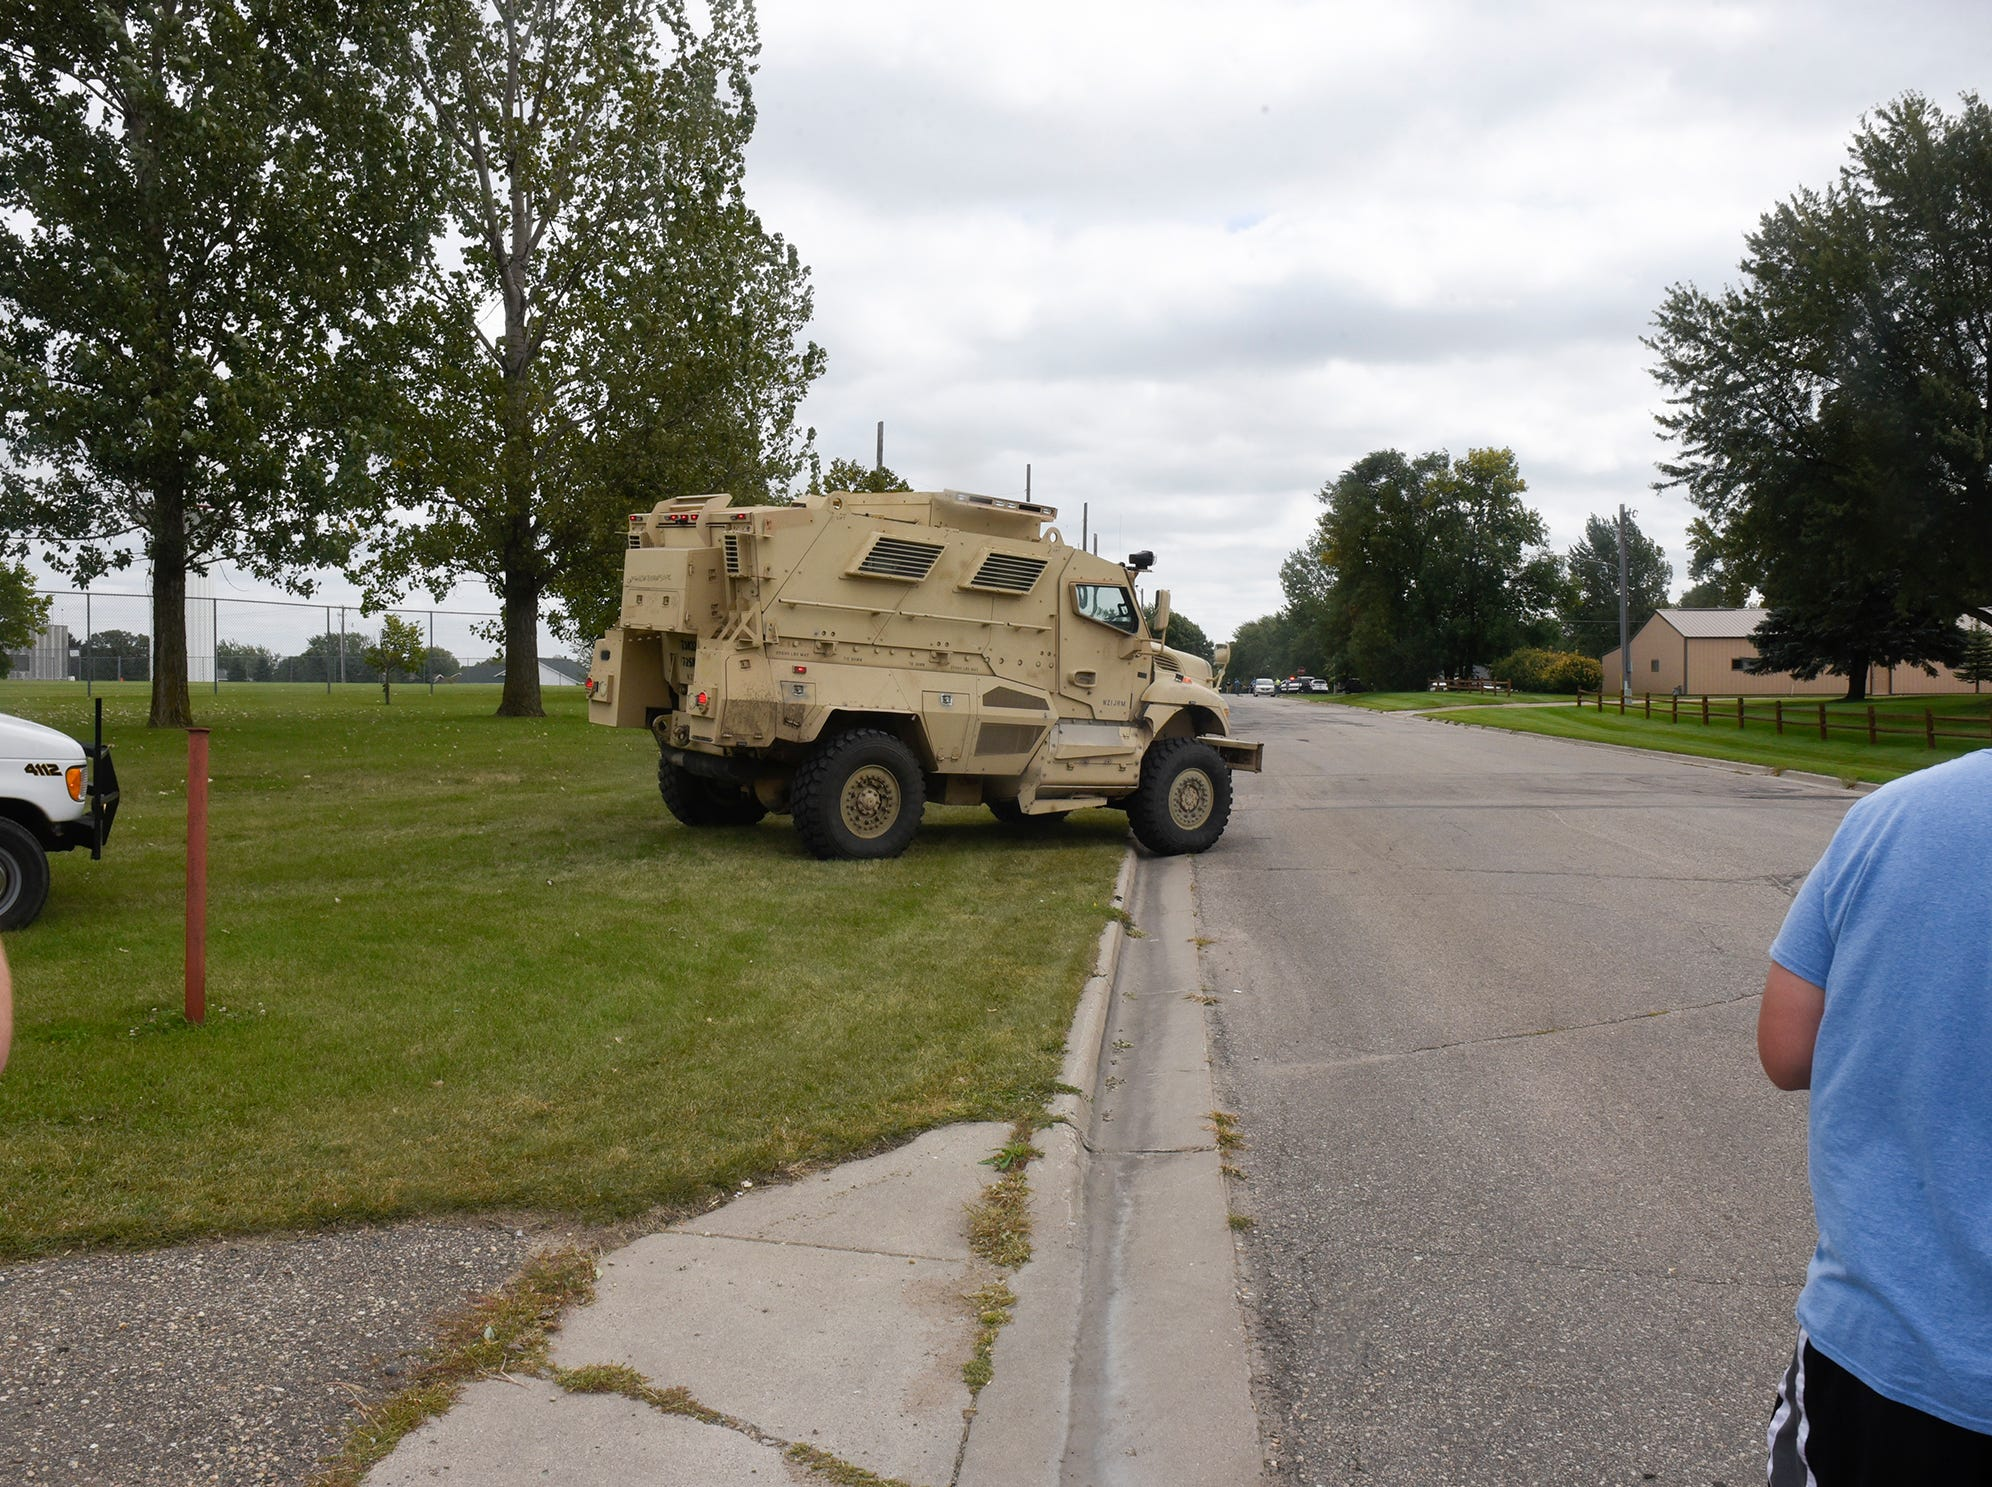 An armored vehicle approaches the scene of a shooting Thursday, Sept. 13, in Sauk Centre.